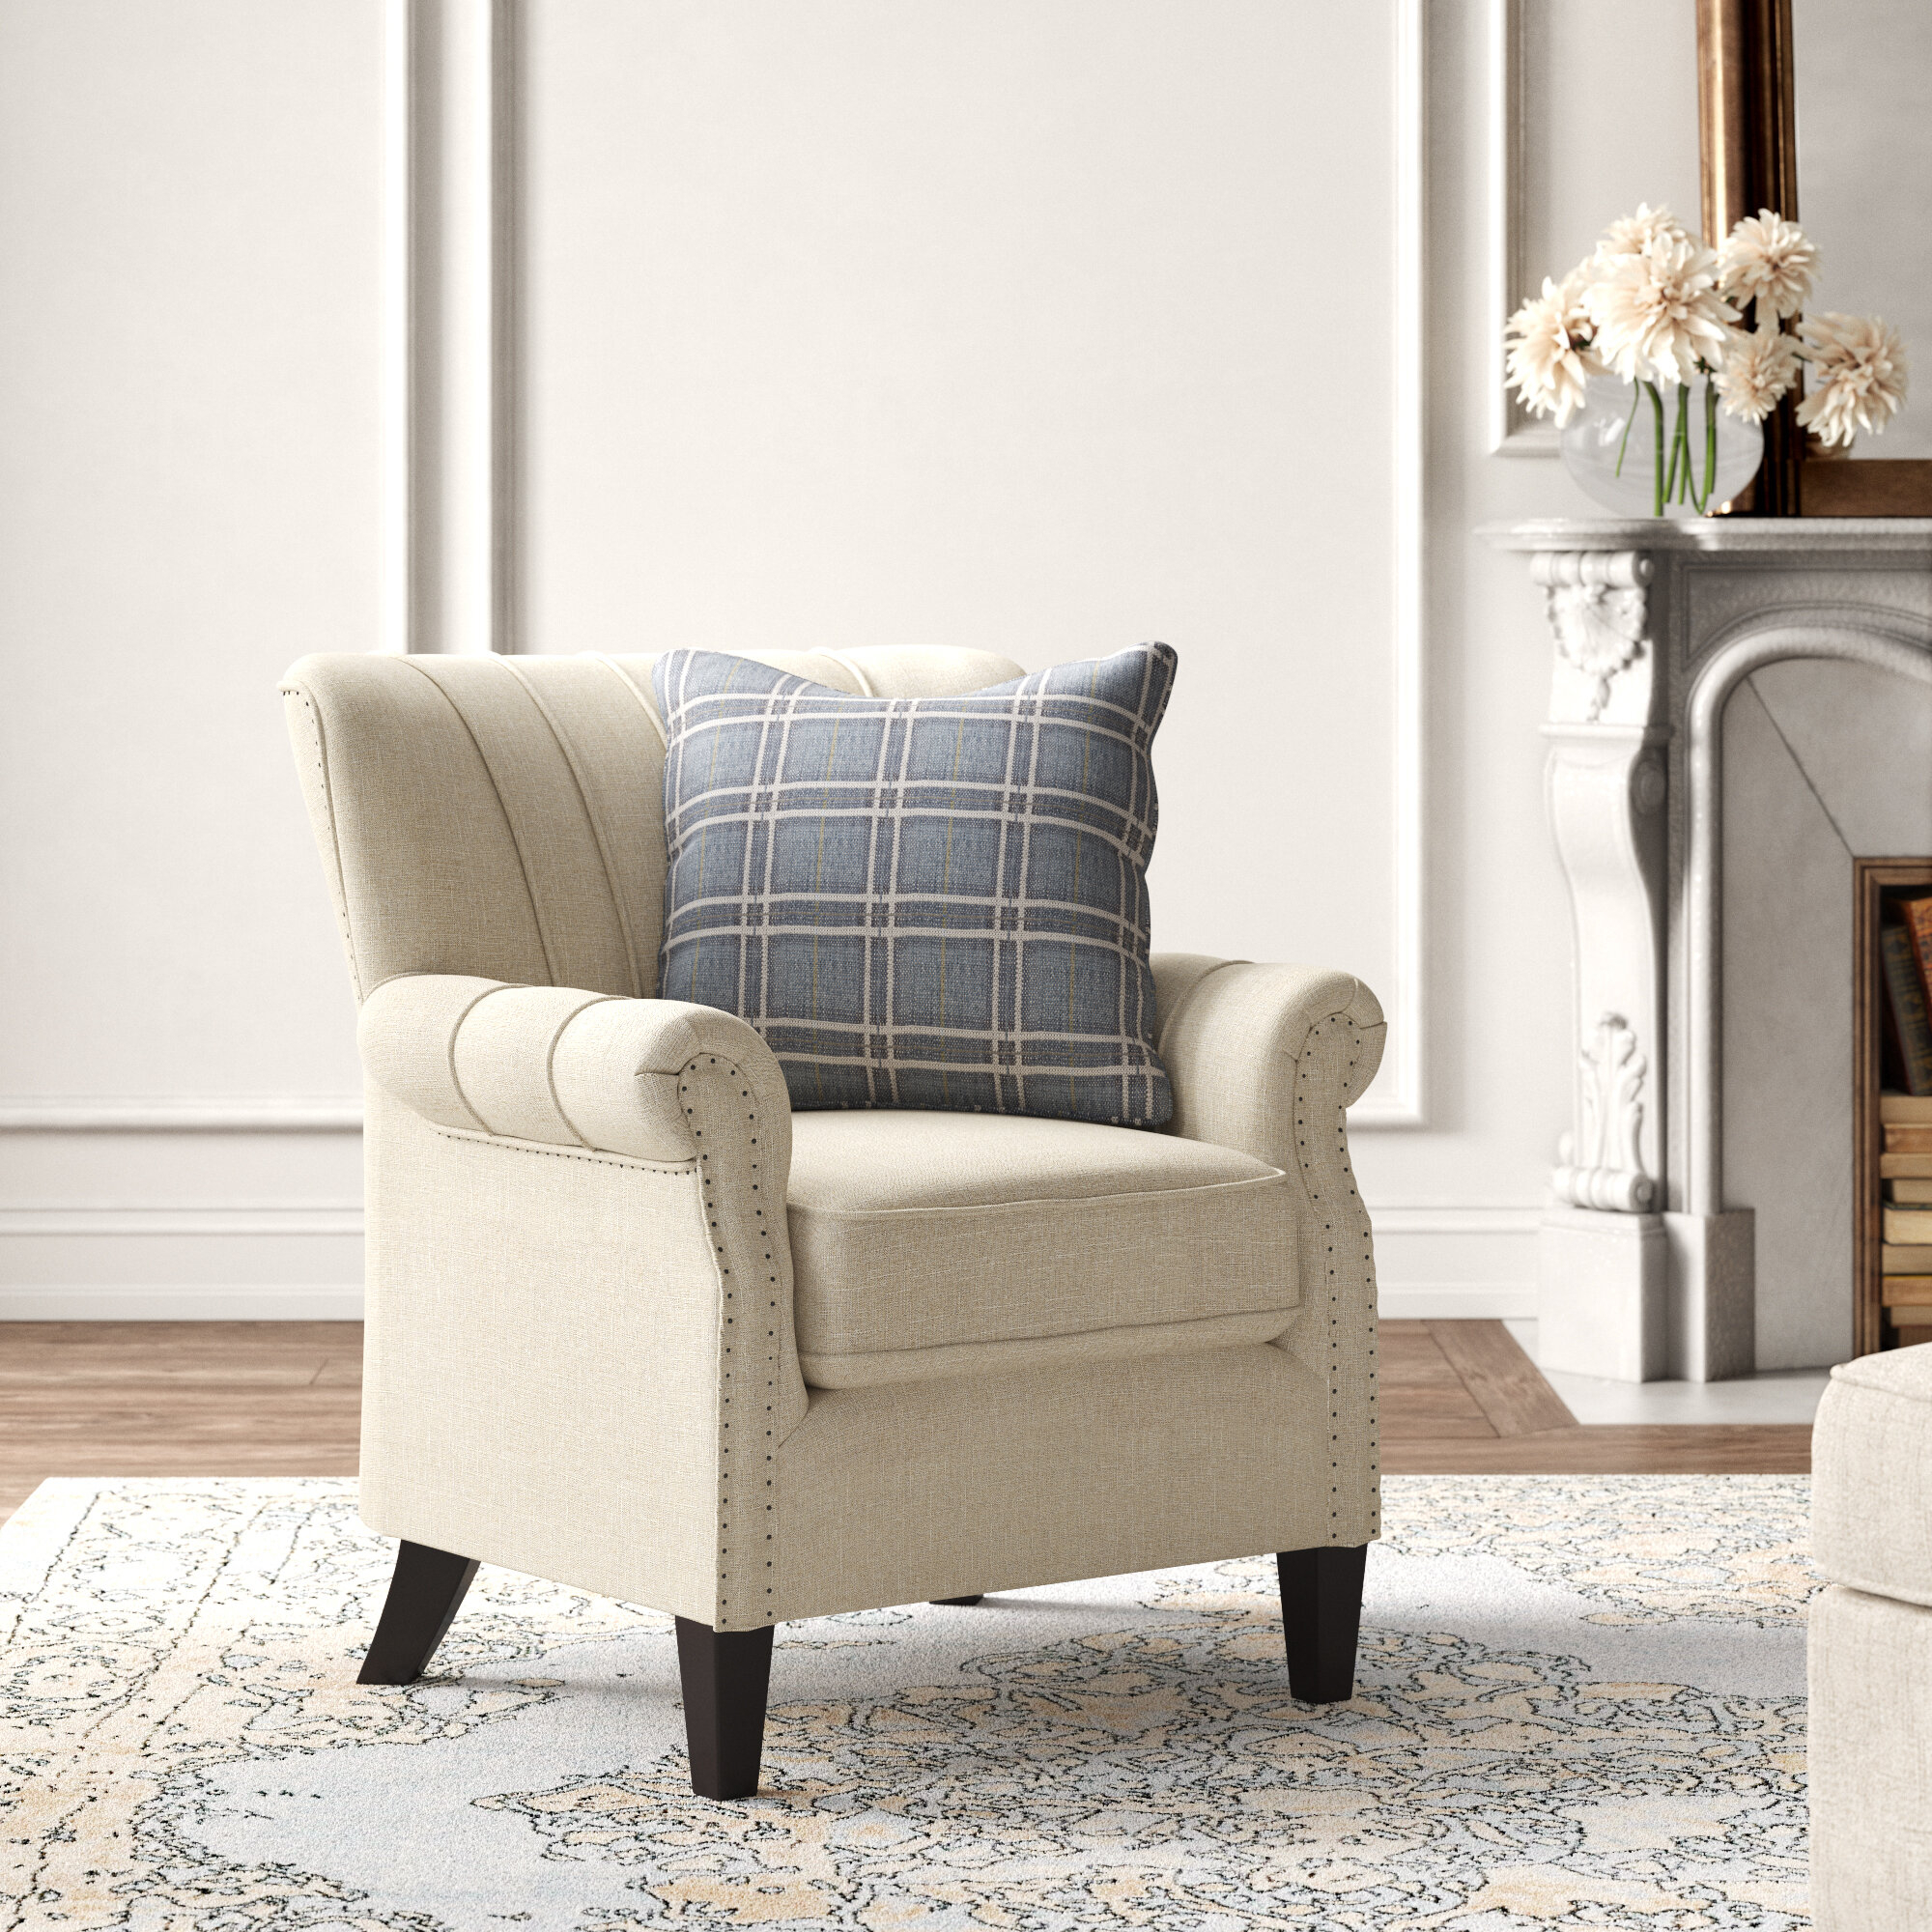 Armchairs | Wayfair Within Dallin Arm Chairs (View 5 of 15)